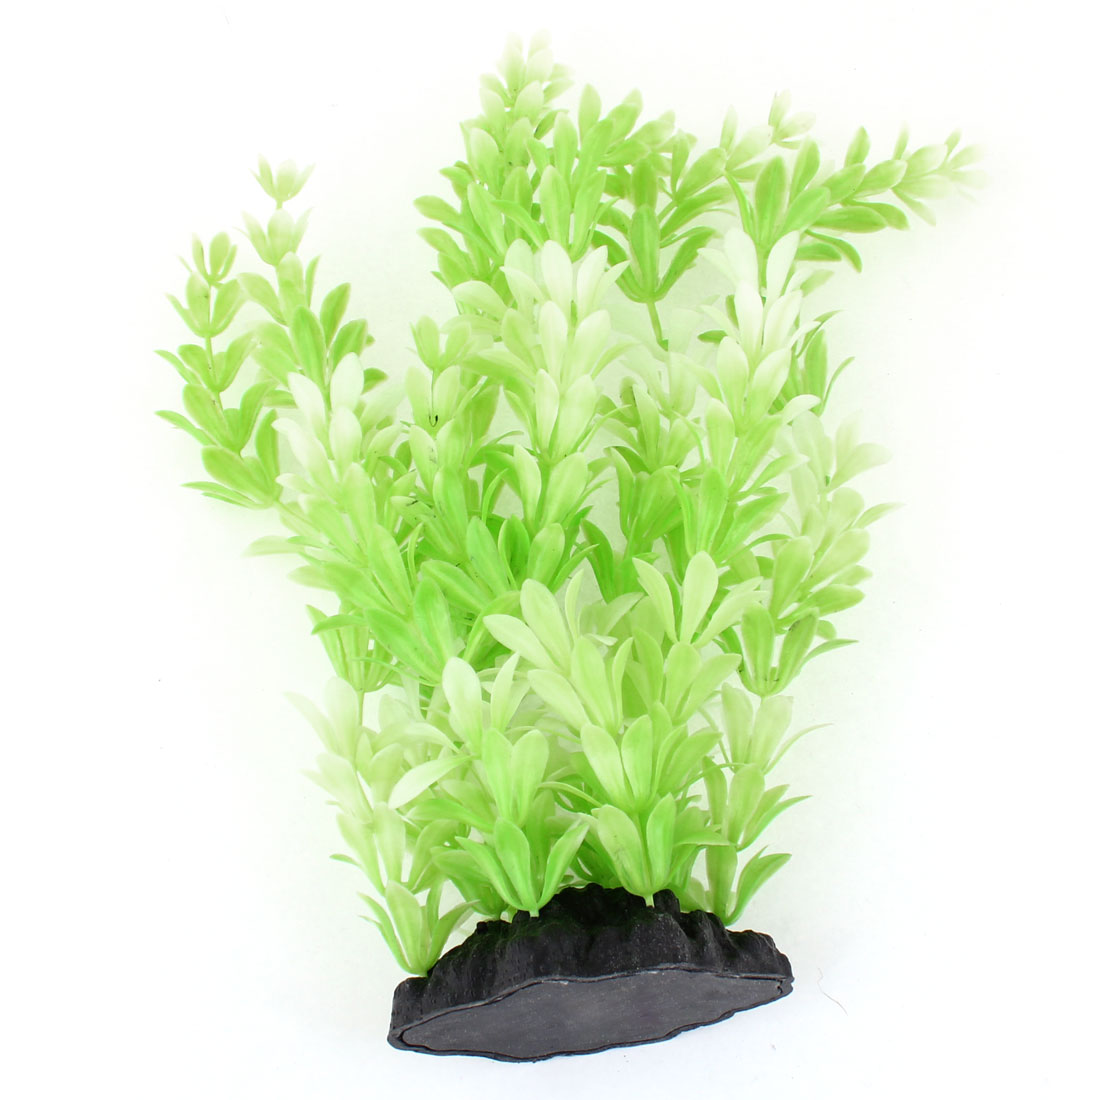 "Light Green Snowflake Shaped Manmade Water Grass 10.2"" Height for Fish Tank"